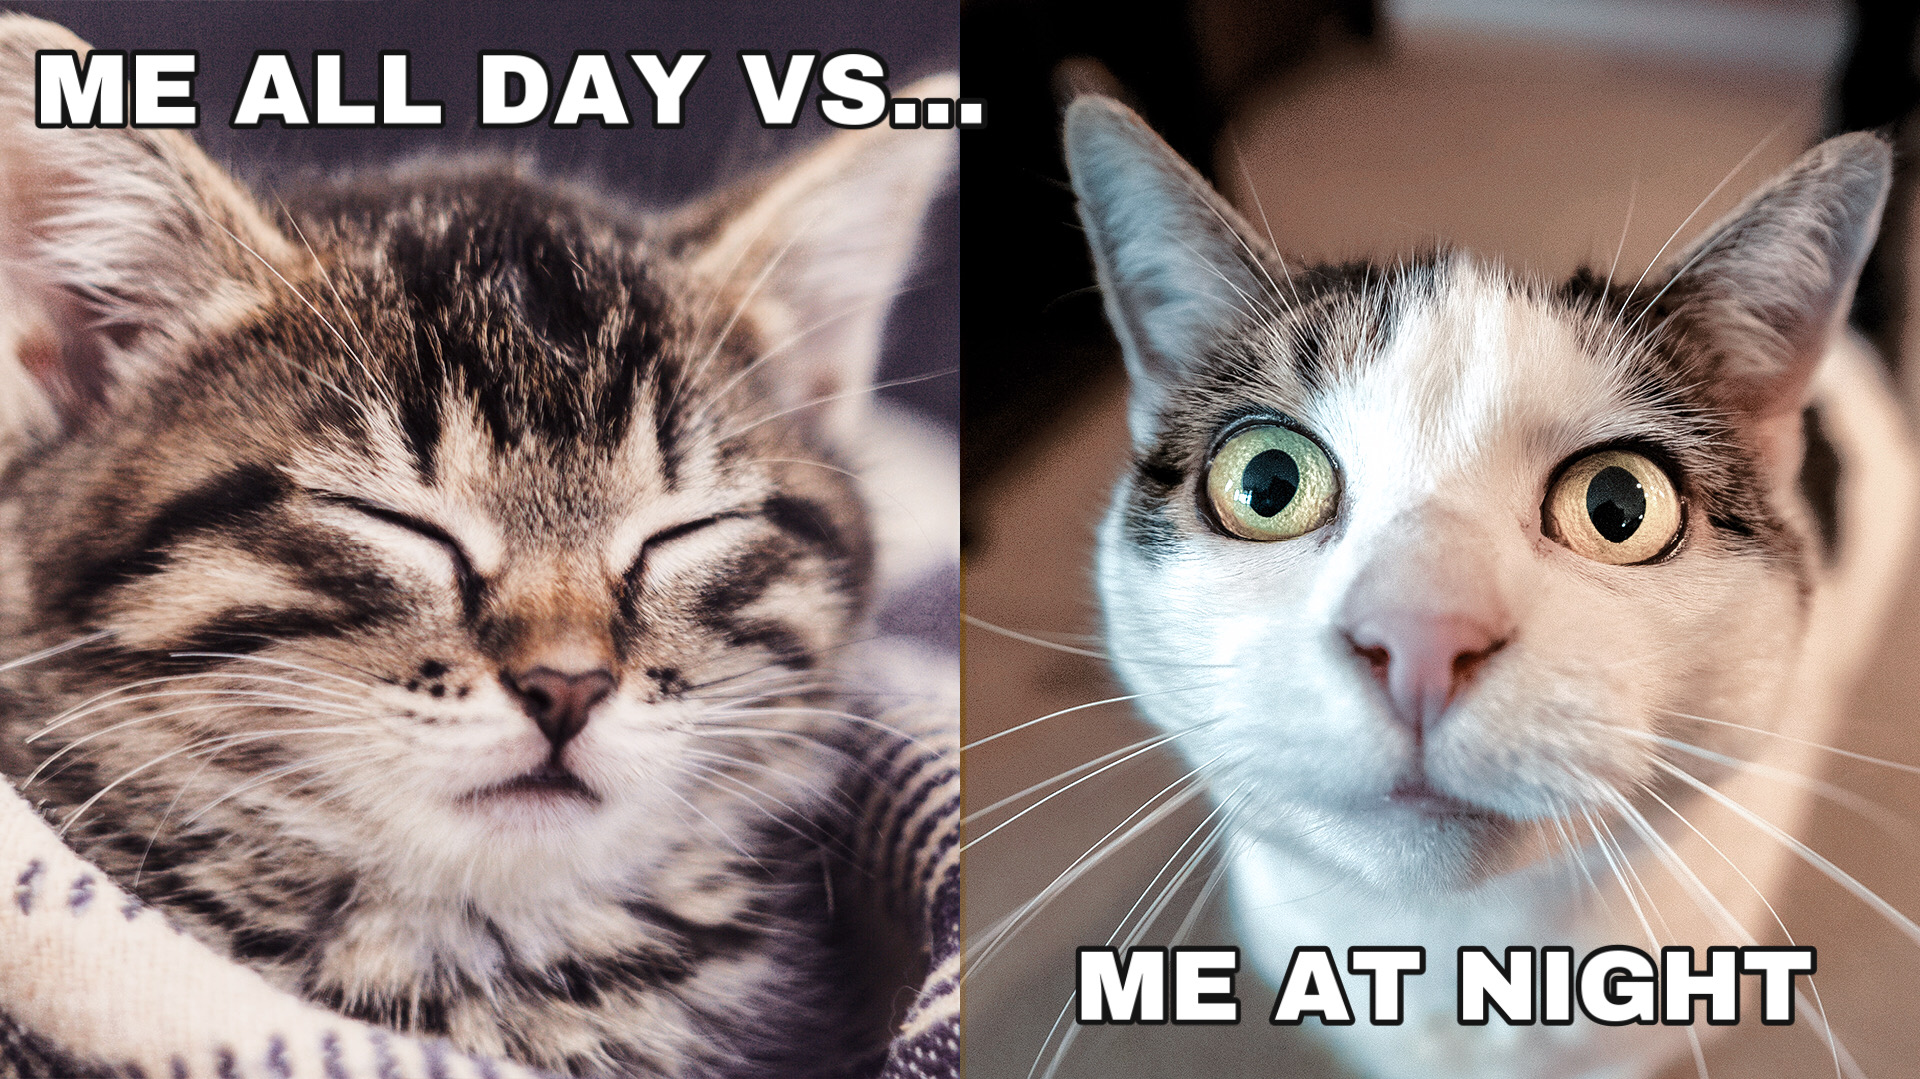 Meme of two cats made with meme maker tool